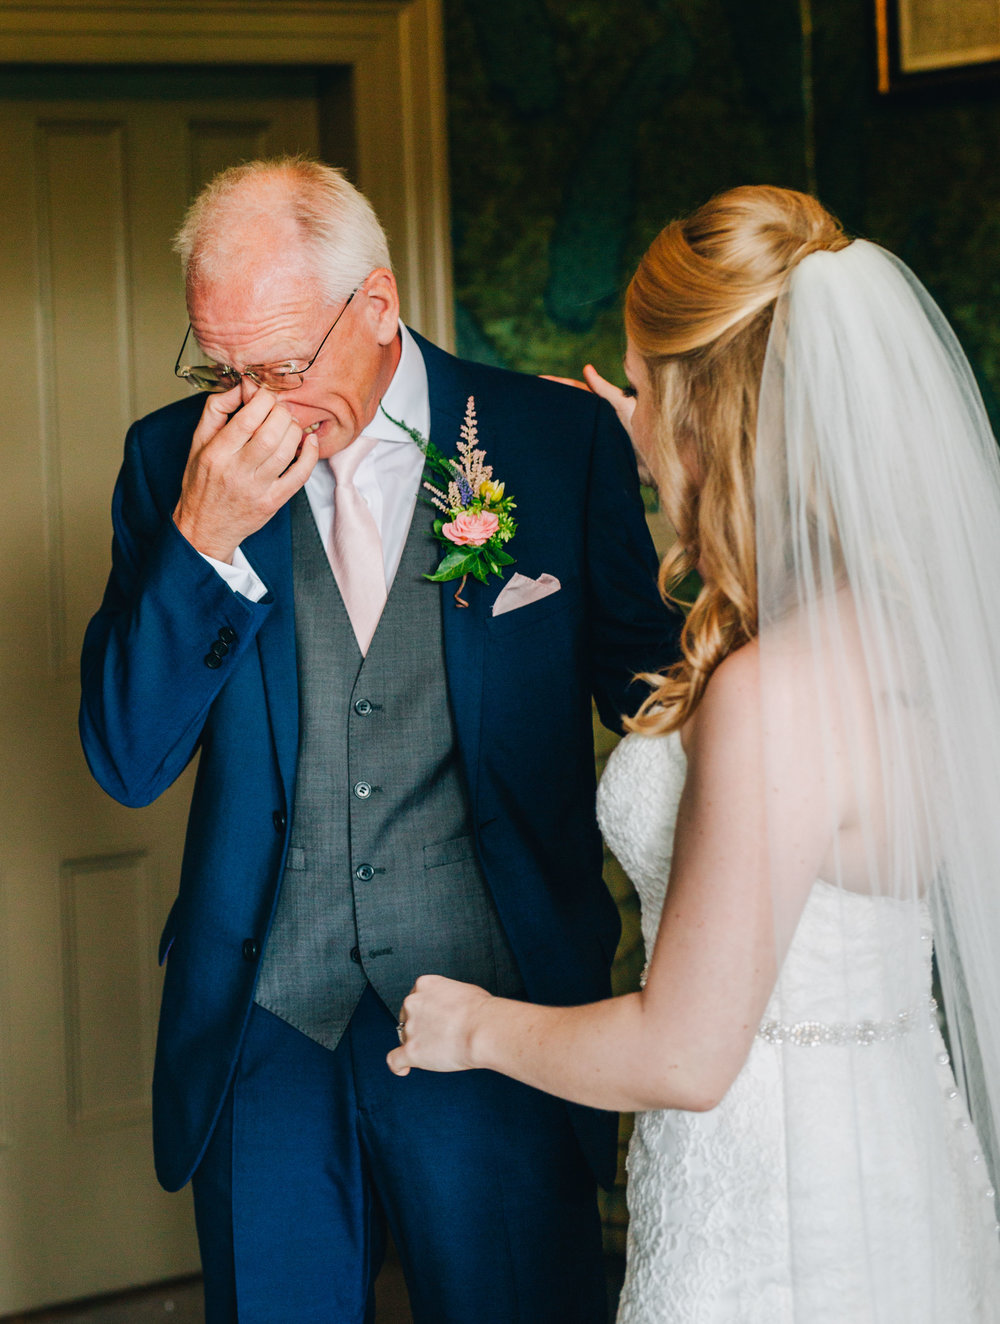 dad's emotional reaction to seeing his bride - documentary wedding photography